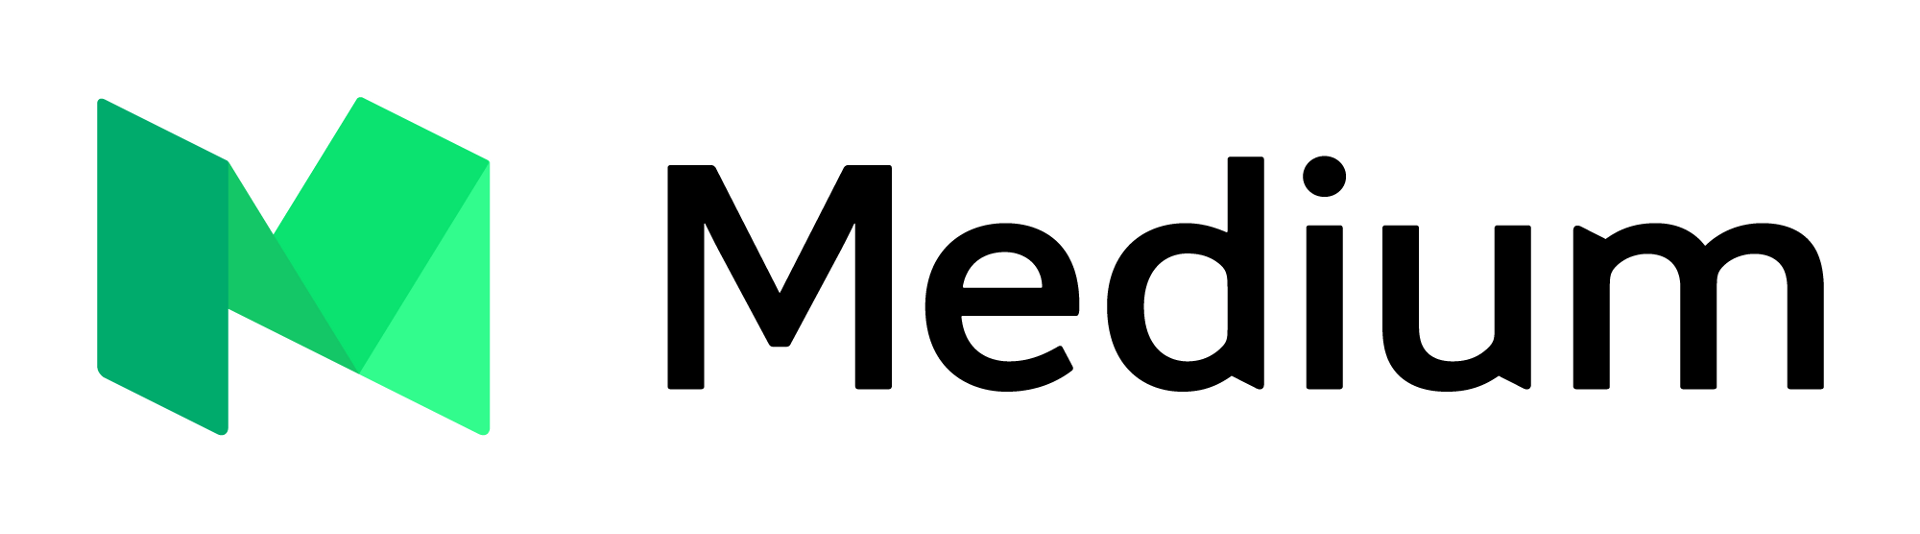 Should you publish on Medium? No.